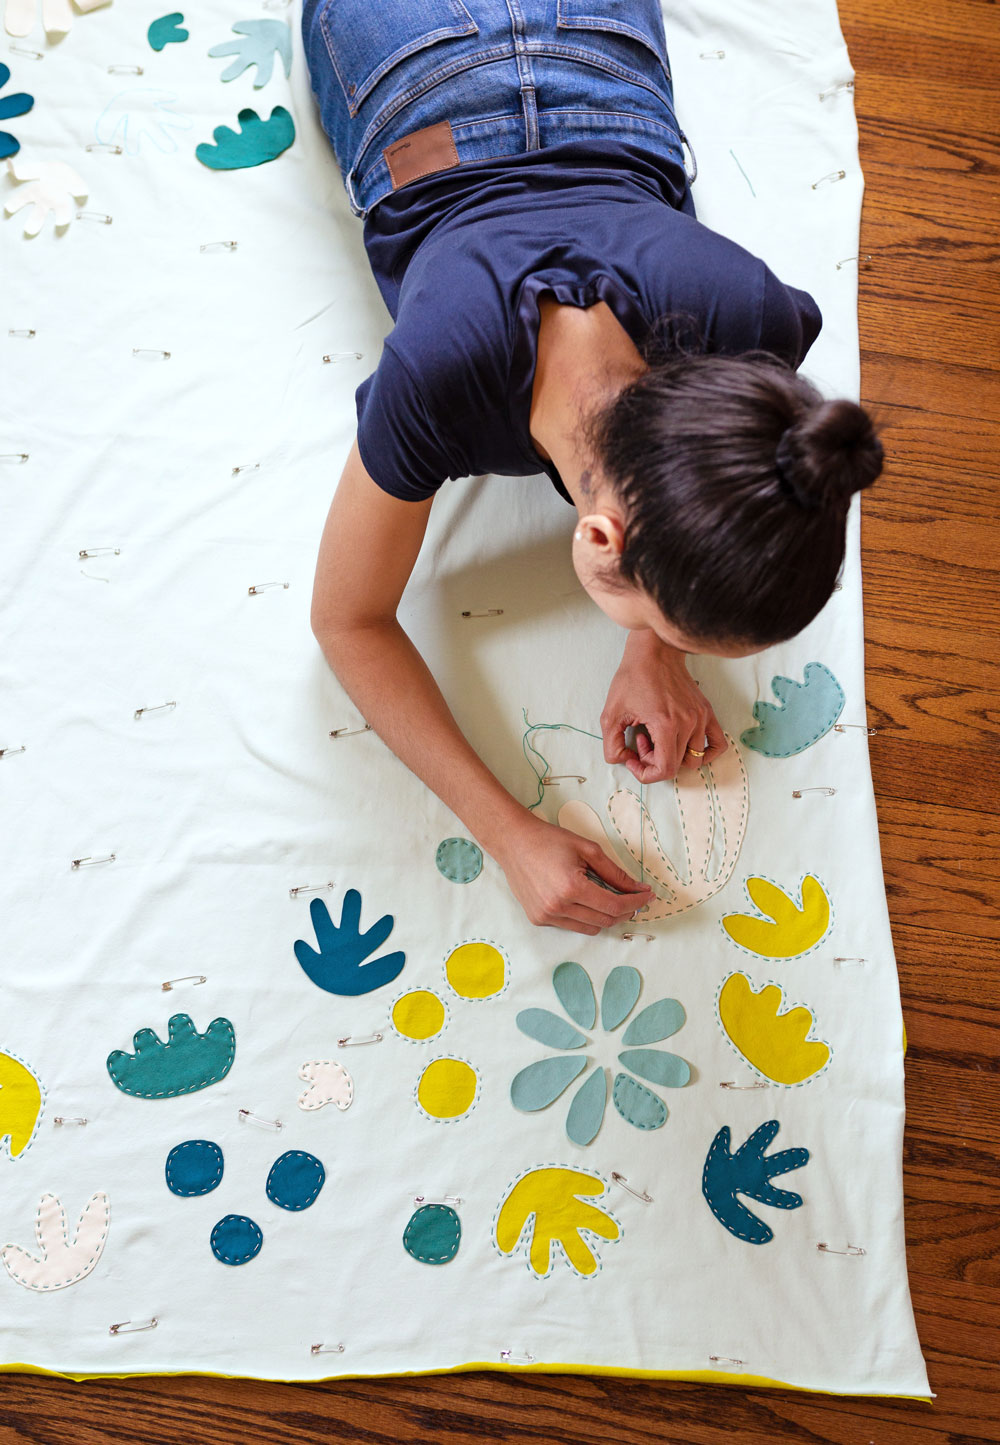 Make a simple whole-cloth quilt without a sewing machine or any prior sewing knowledge!